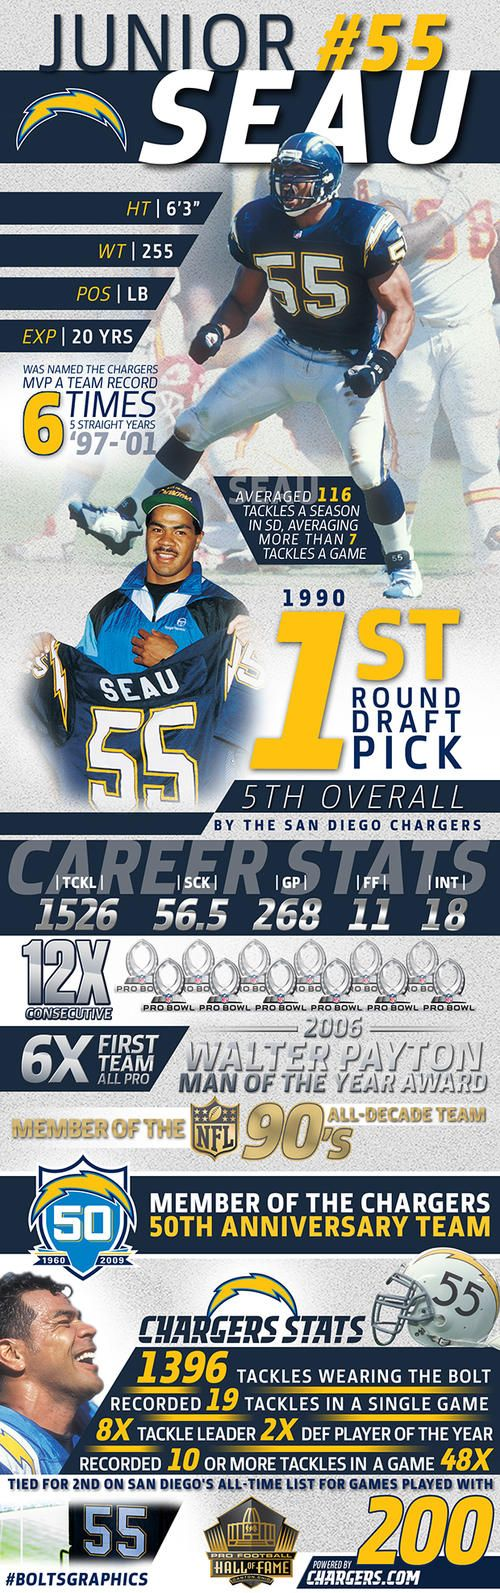 BOLTSGRAPHIC: Junior Seau's Decorated Career | San Diego Chargers